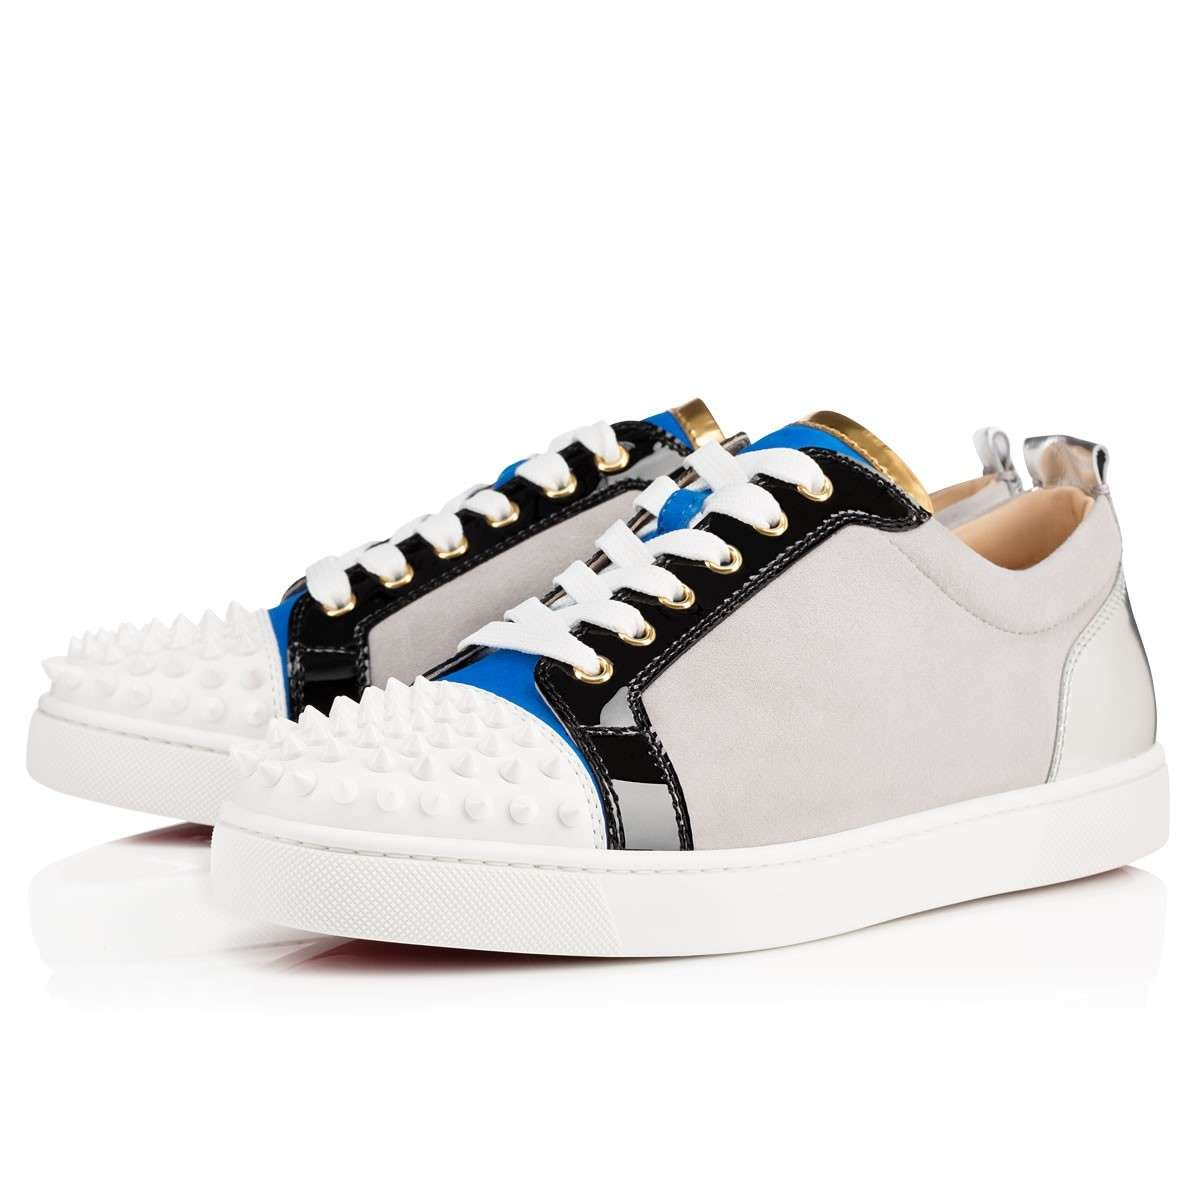 Sneakers in color block Christian Louboutin